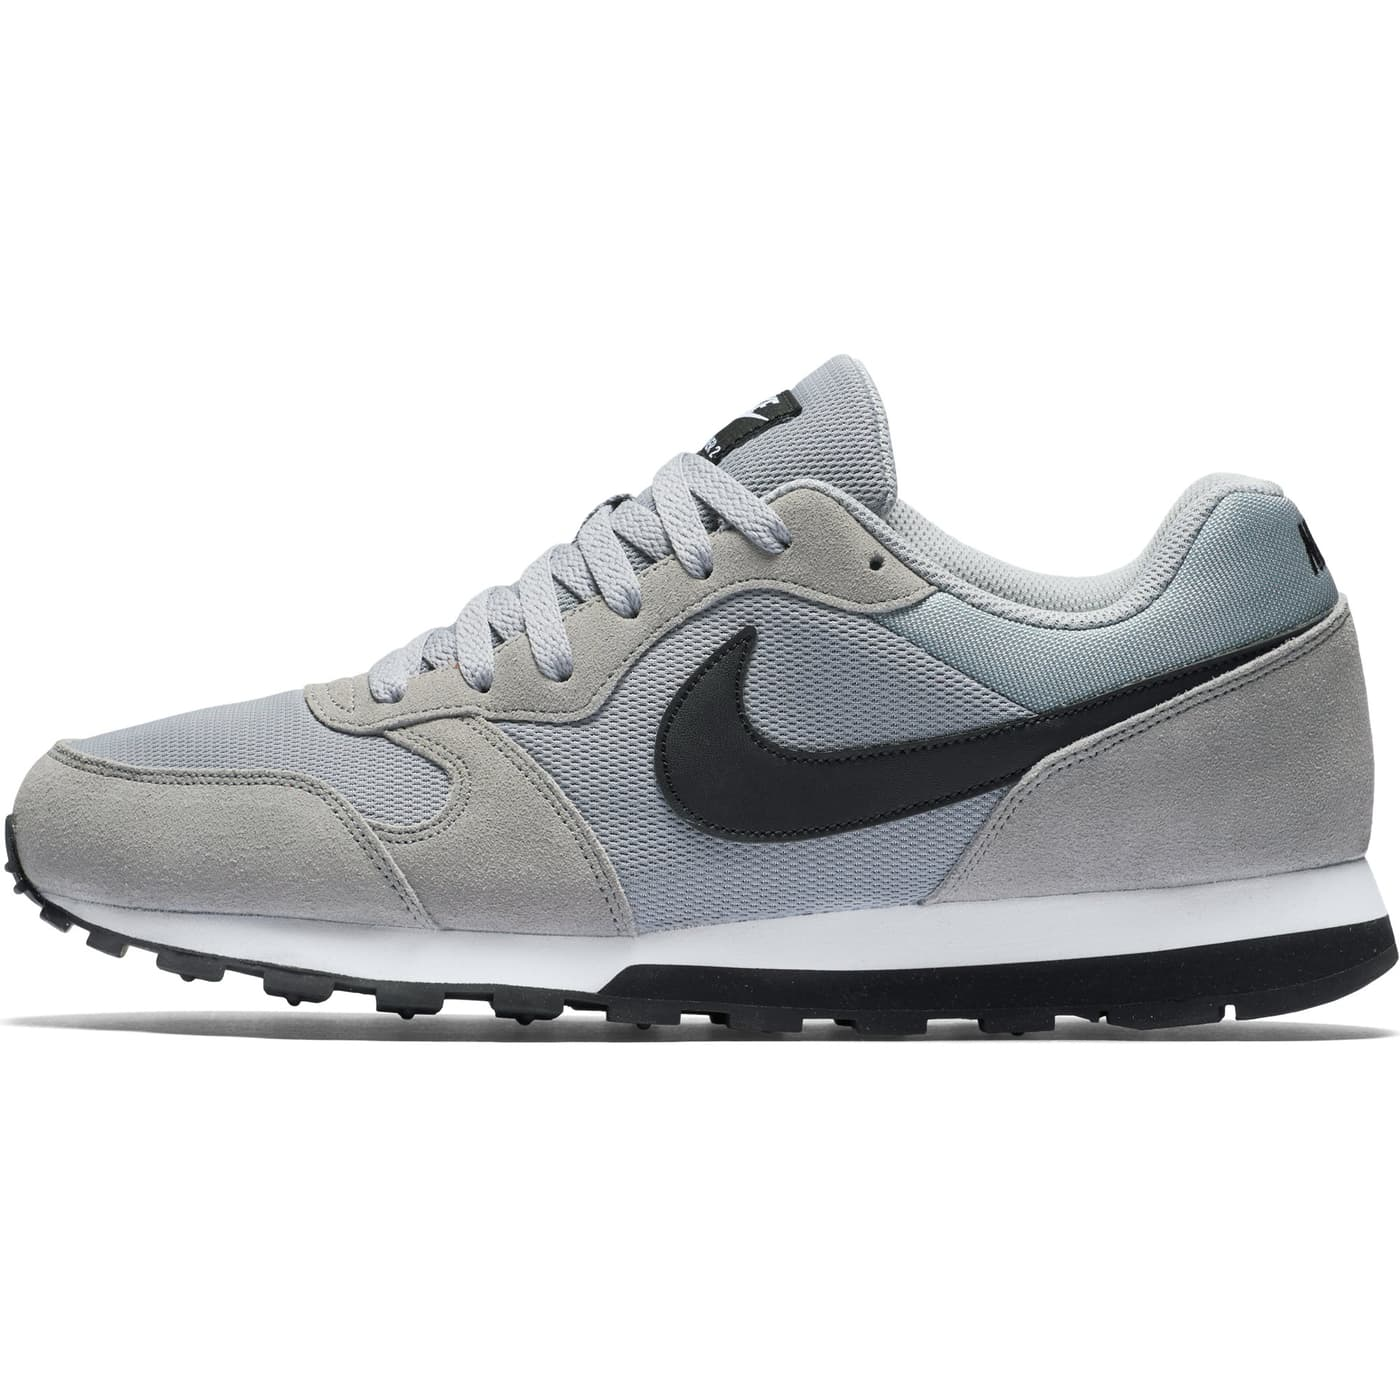 new concept 08106 a346e ... Nike MD Runner 2 Chaussures de loisirs pour homme ...